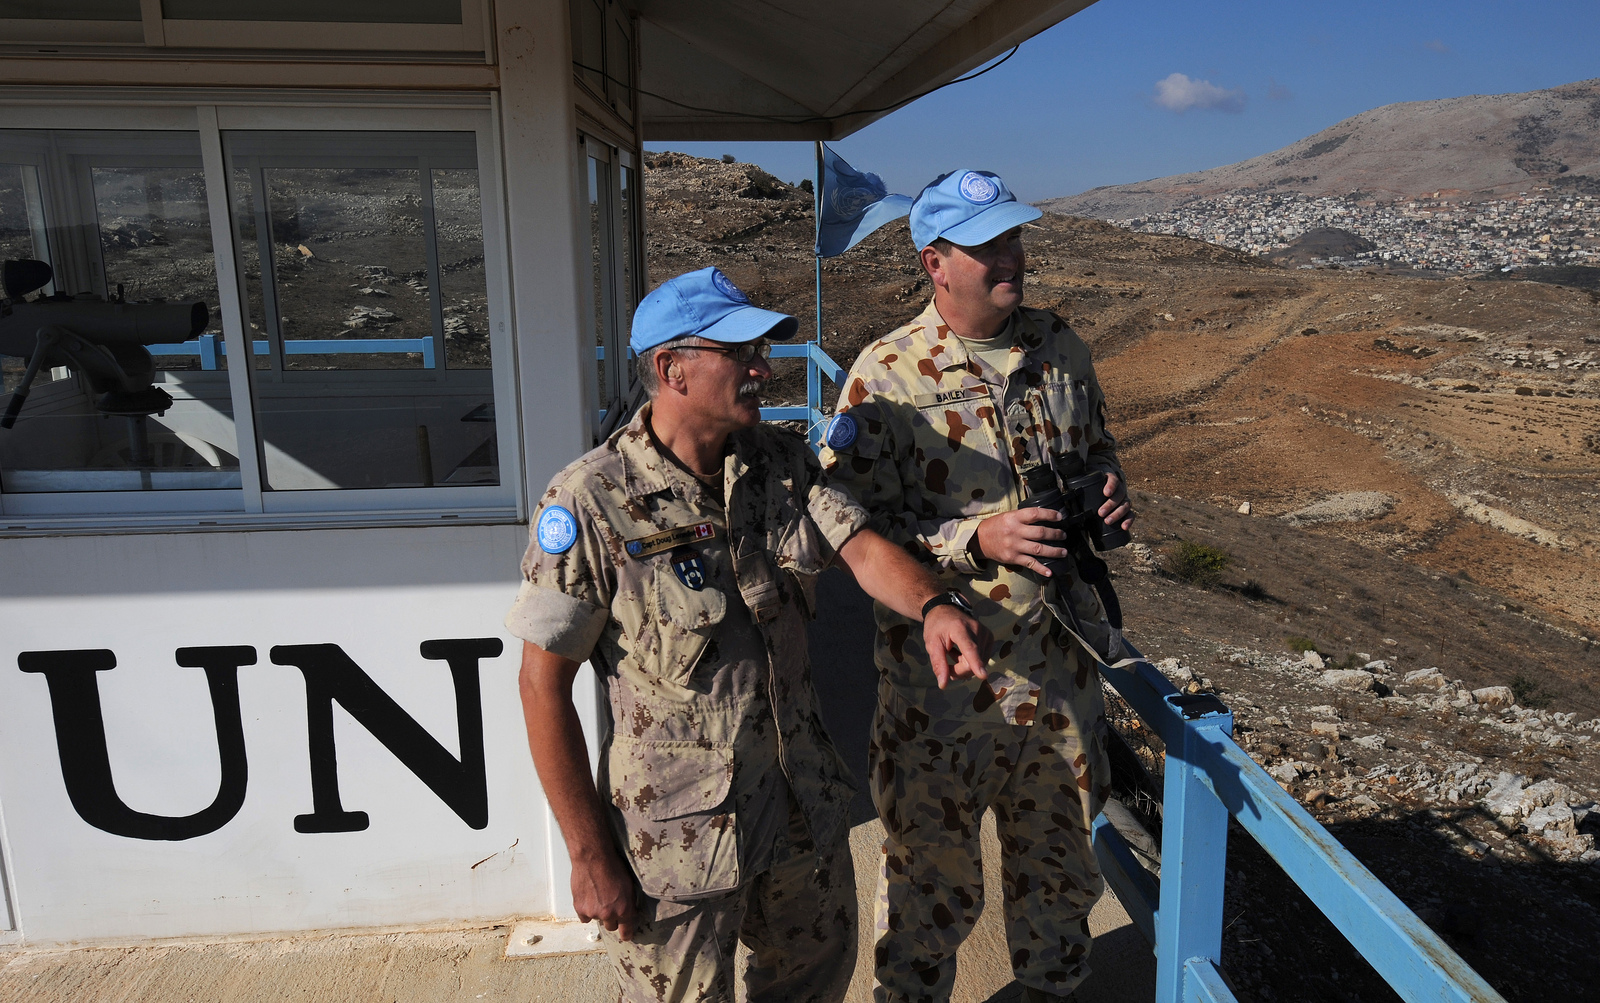 canadian peacekeeping Canada's role in the development of peacekeeping during the 20th century led to the establishment of canada as a prominent world power canada's commitment to.